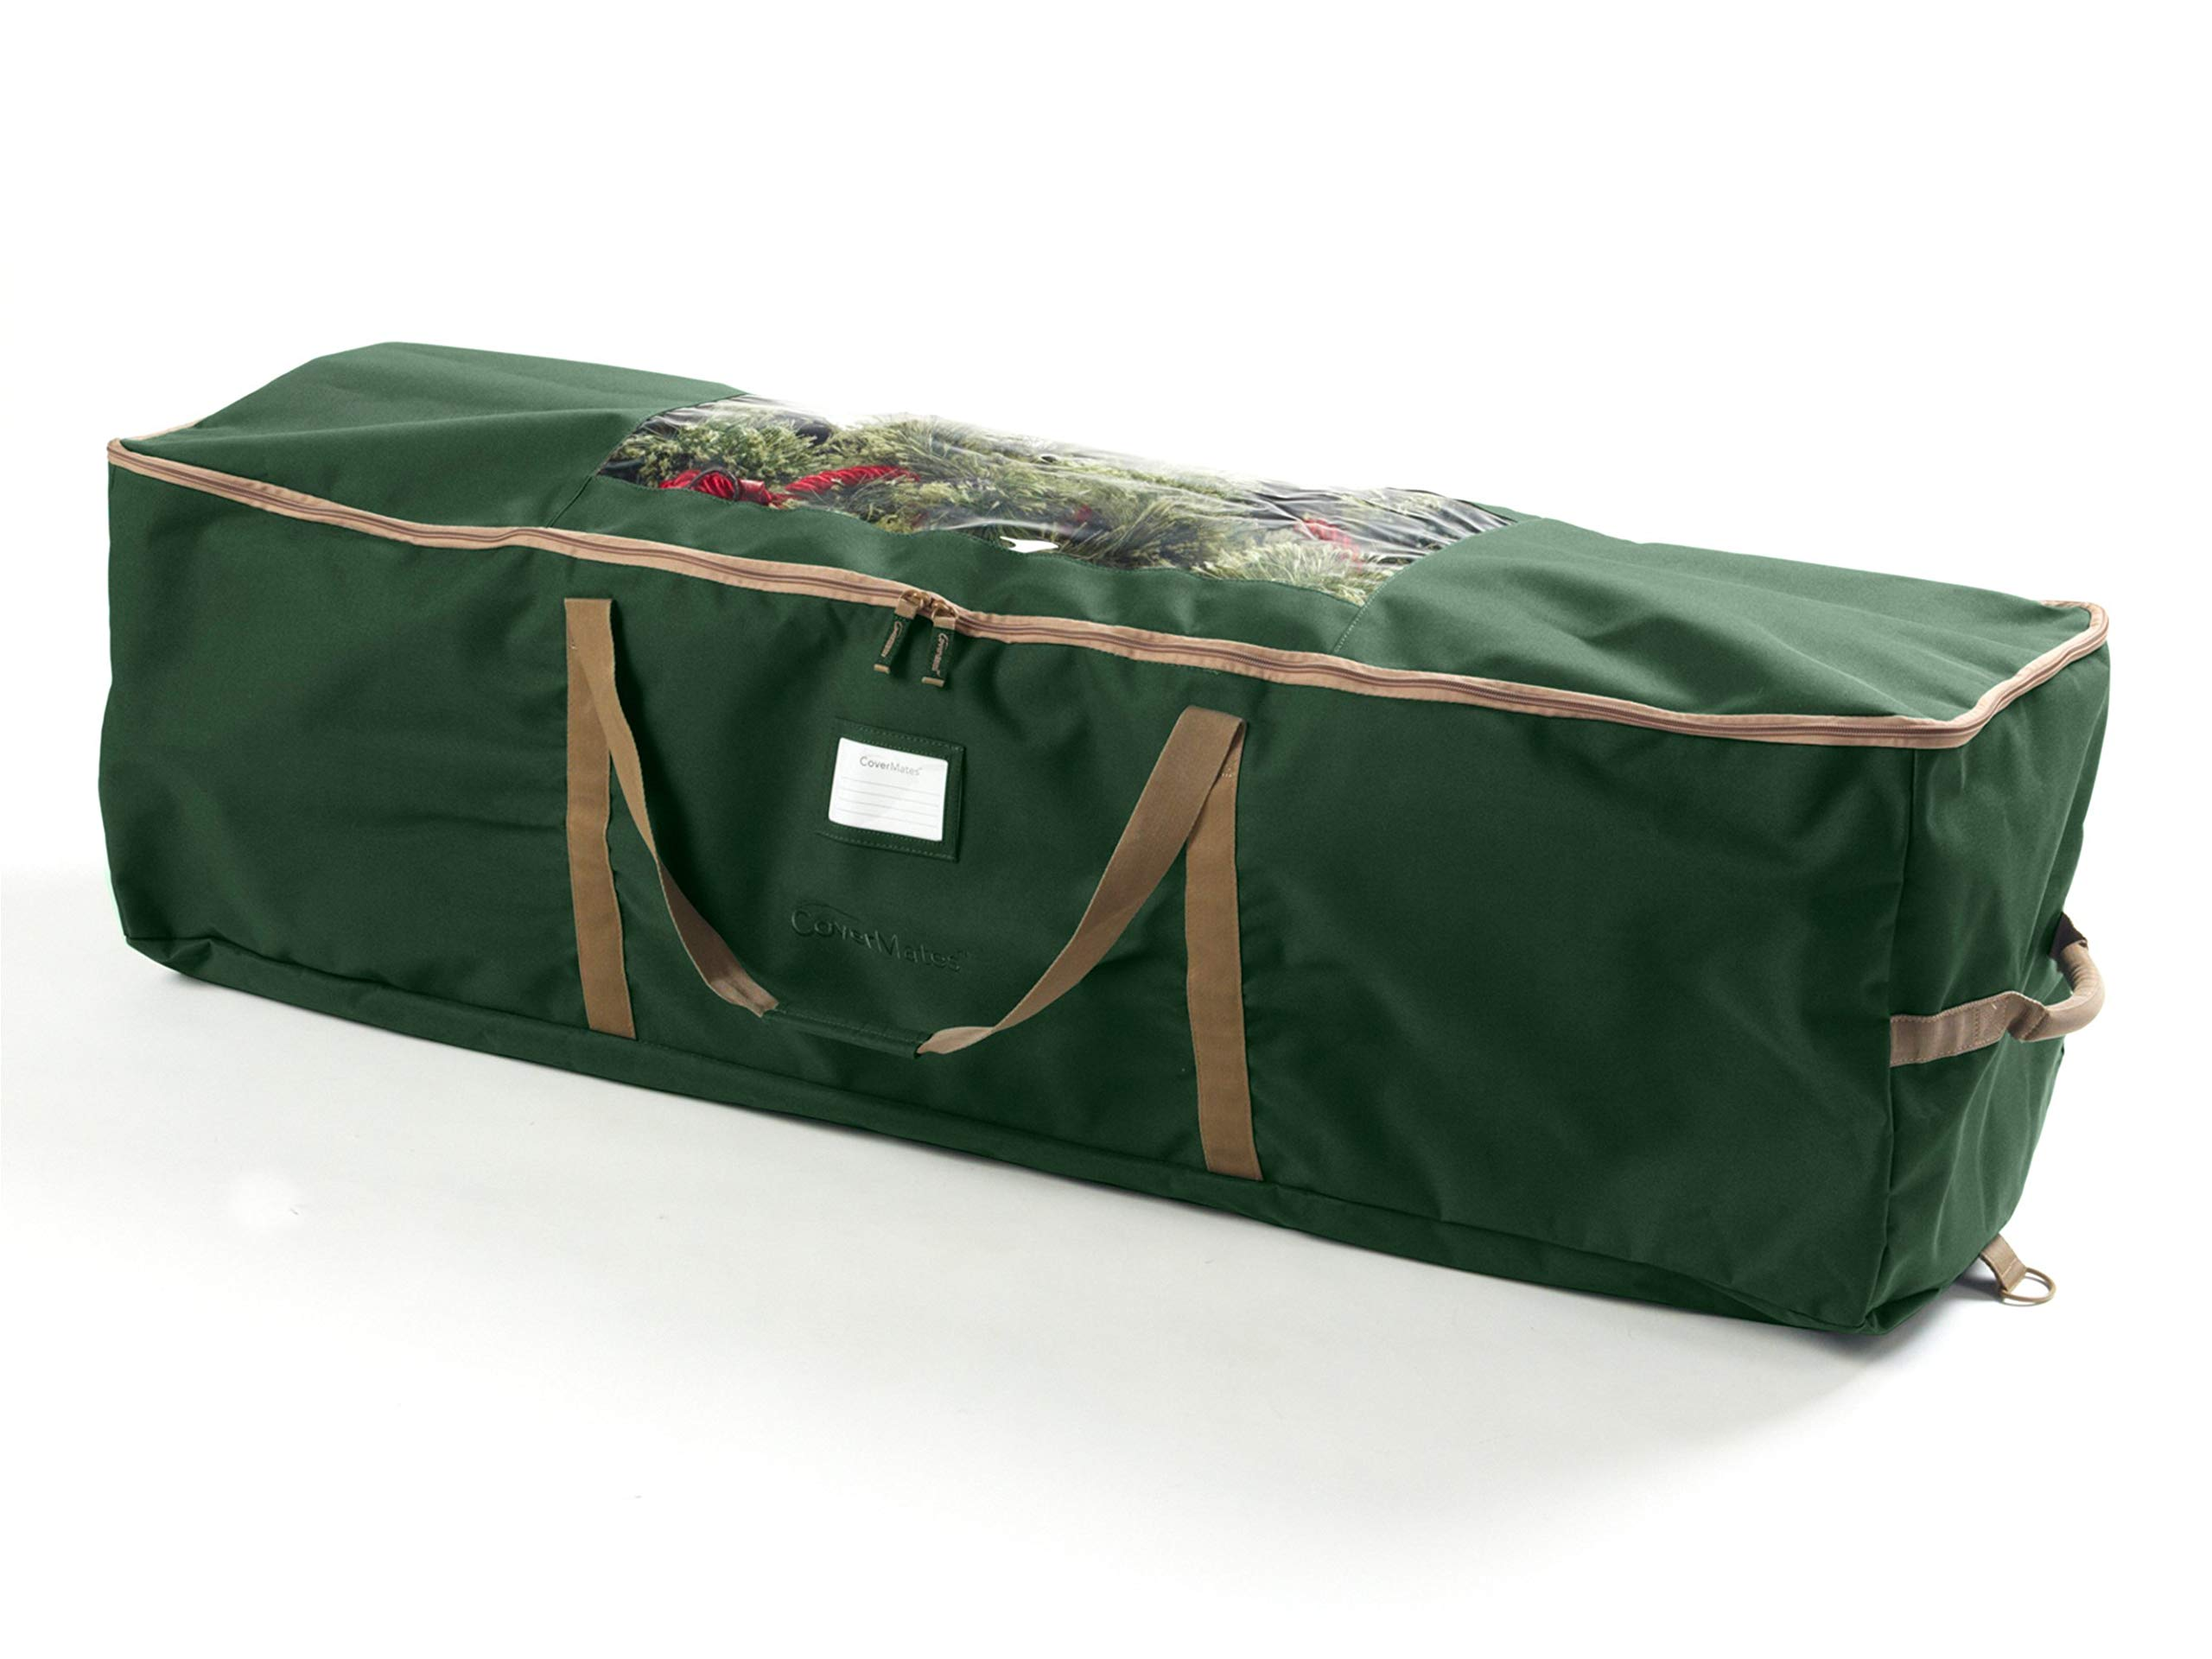 CoverMates – Holiday Garland Storage Bag – Holds up to 25 Feet of Garland – 3 Year Warranty- Green